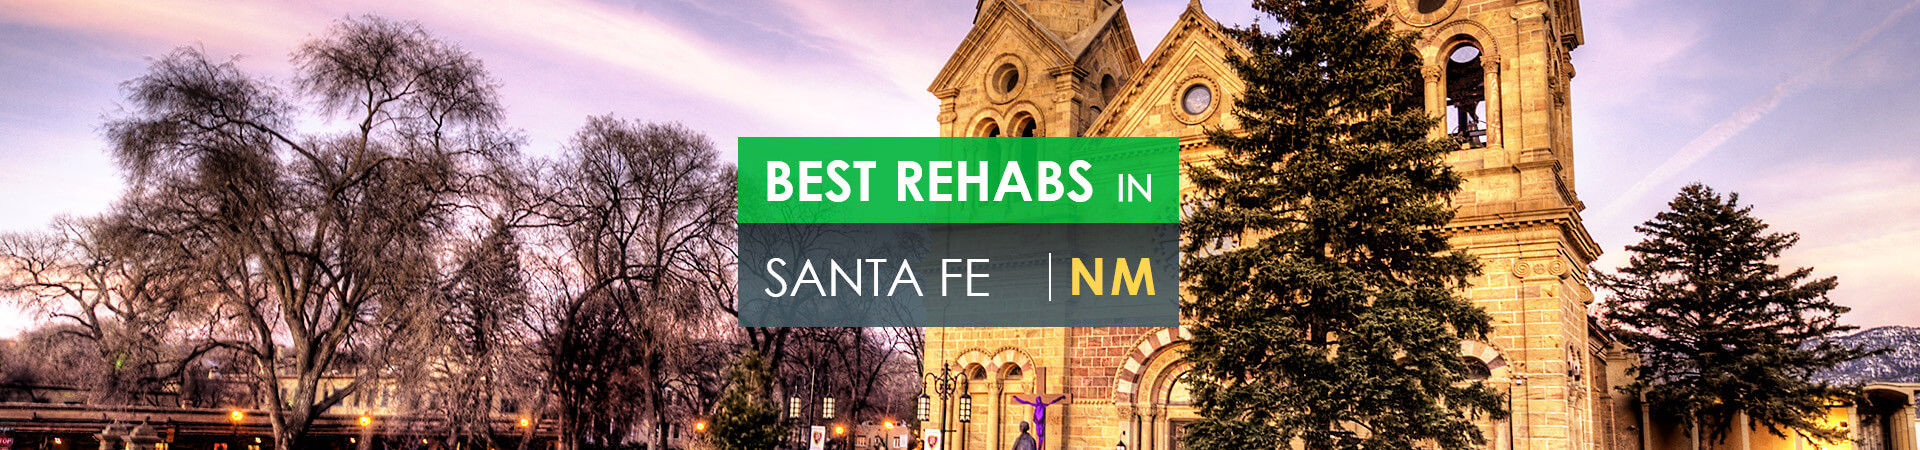 Best rehabs in Santa Fe, NM